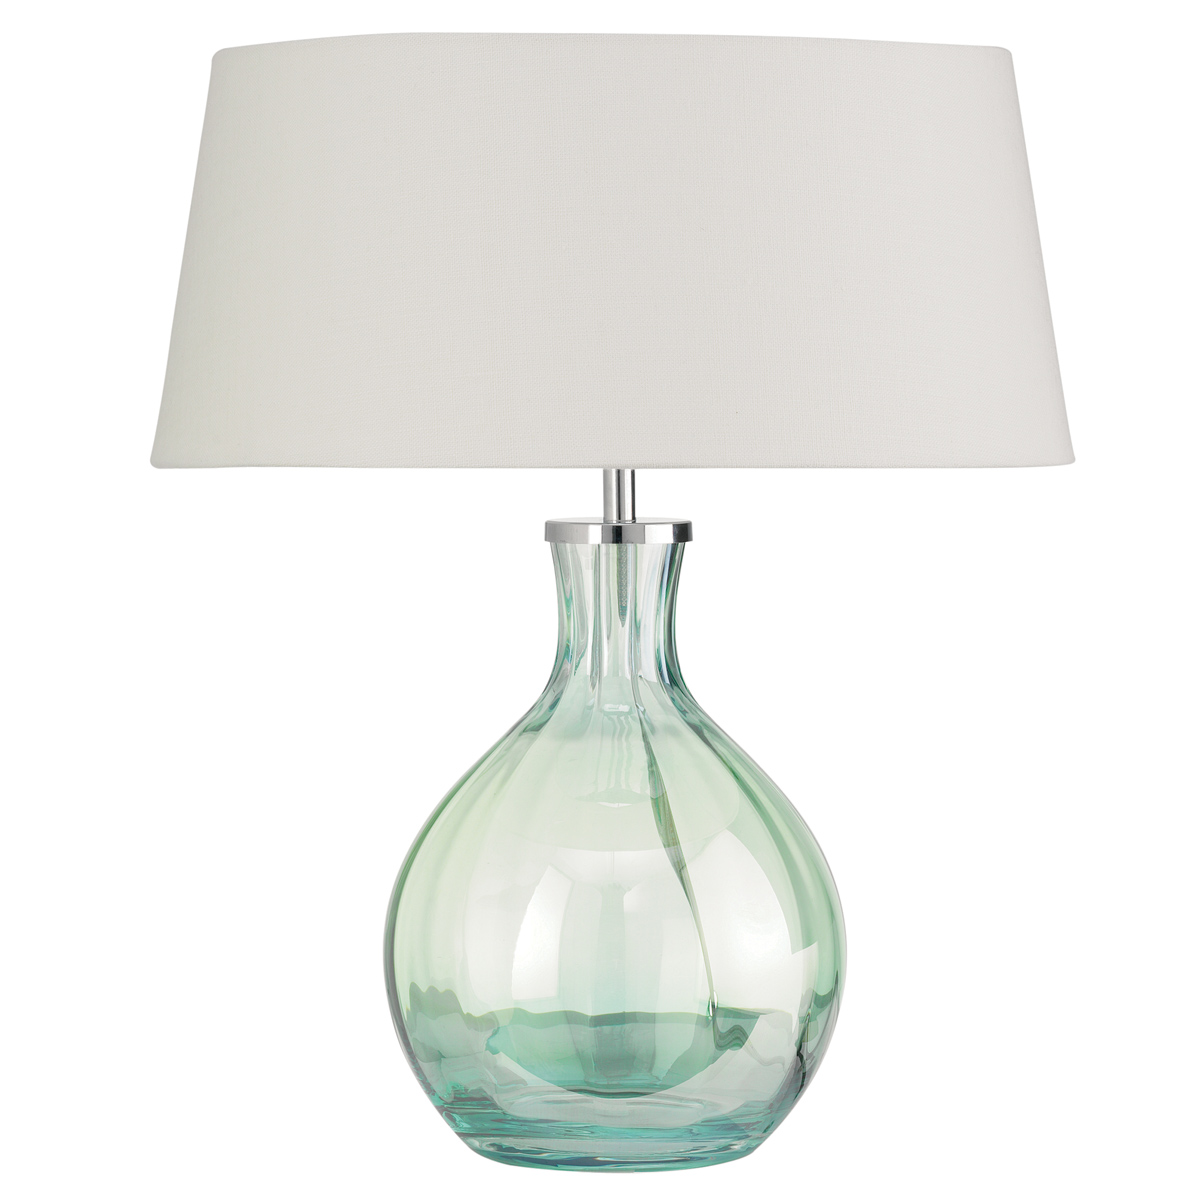 bedroom table lamps on lamp in antique green table lamps lighting